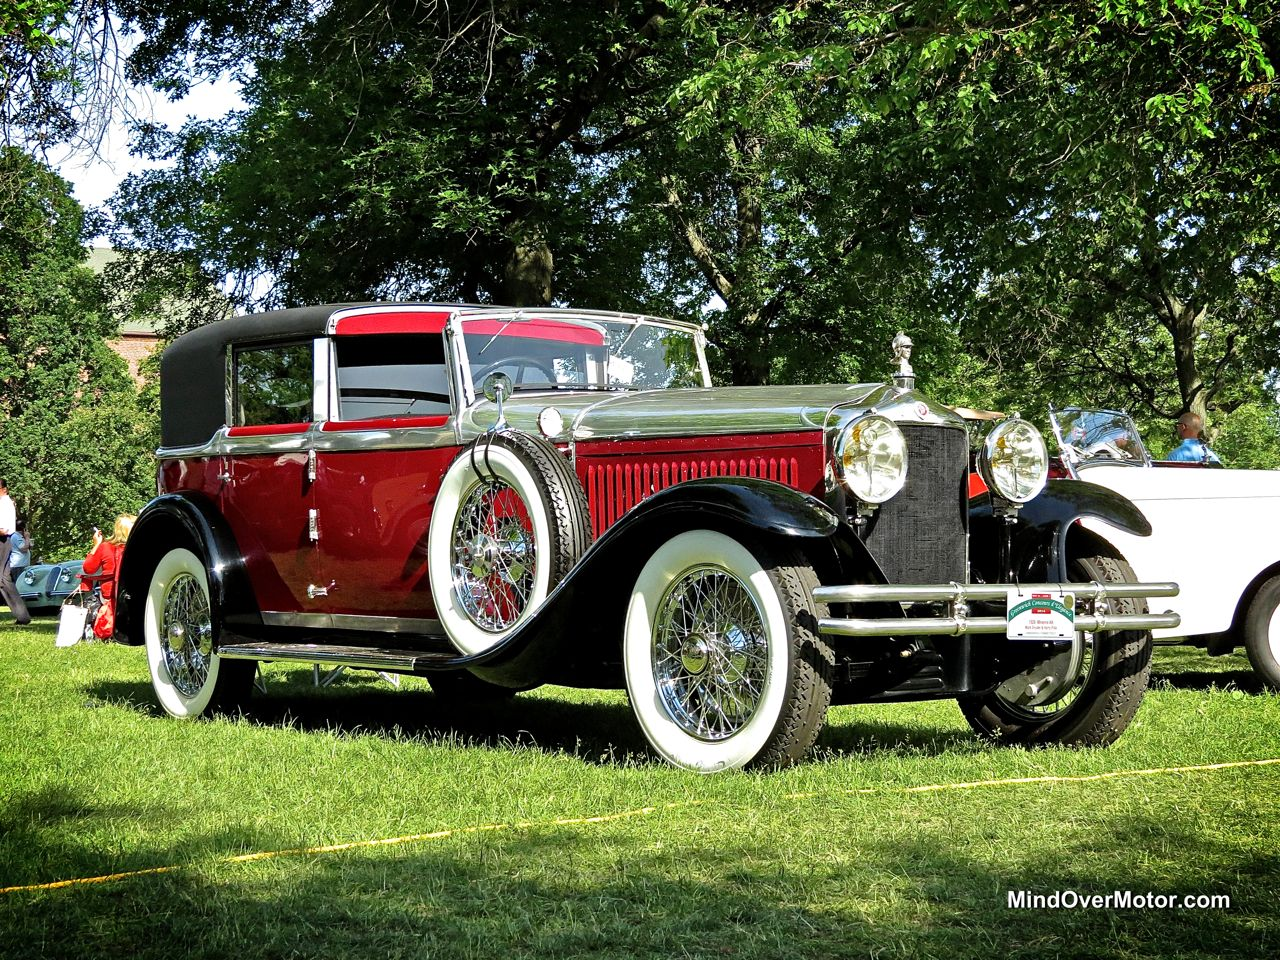 1929 Minerva AK at the Greenwich Concours d'Elegance